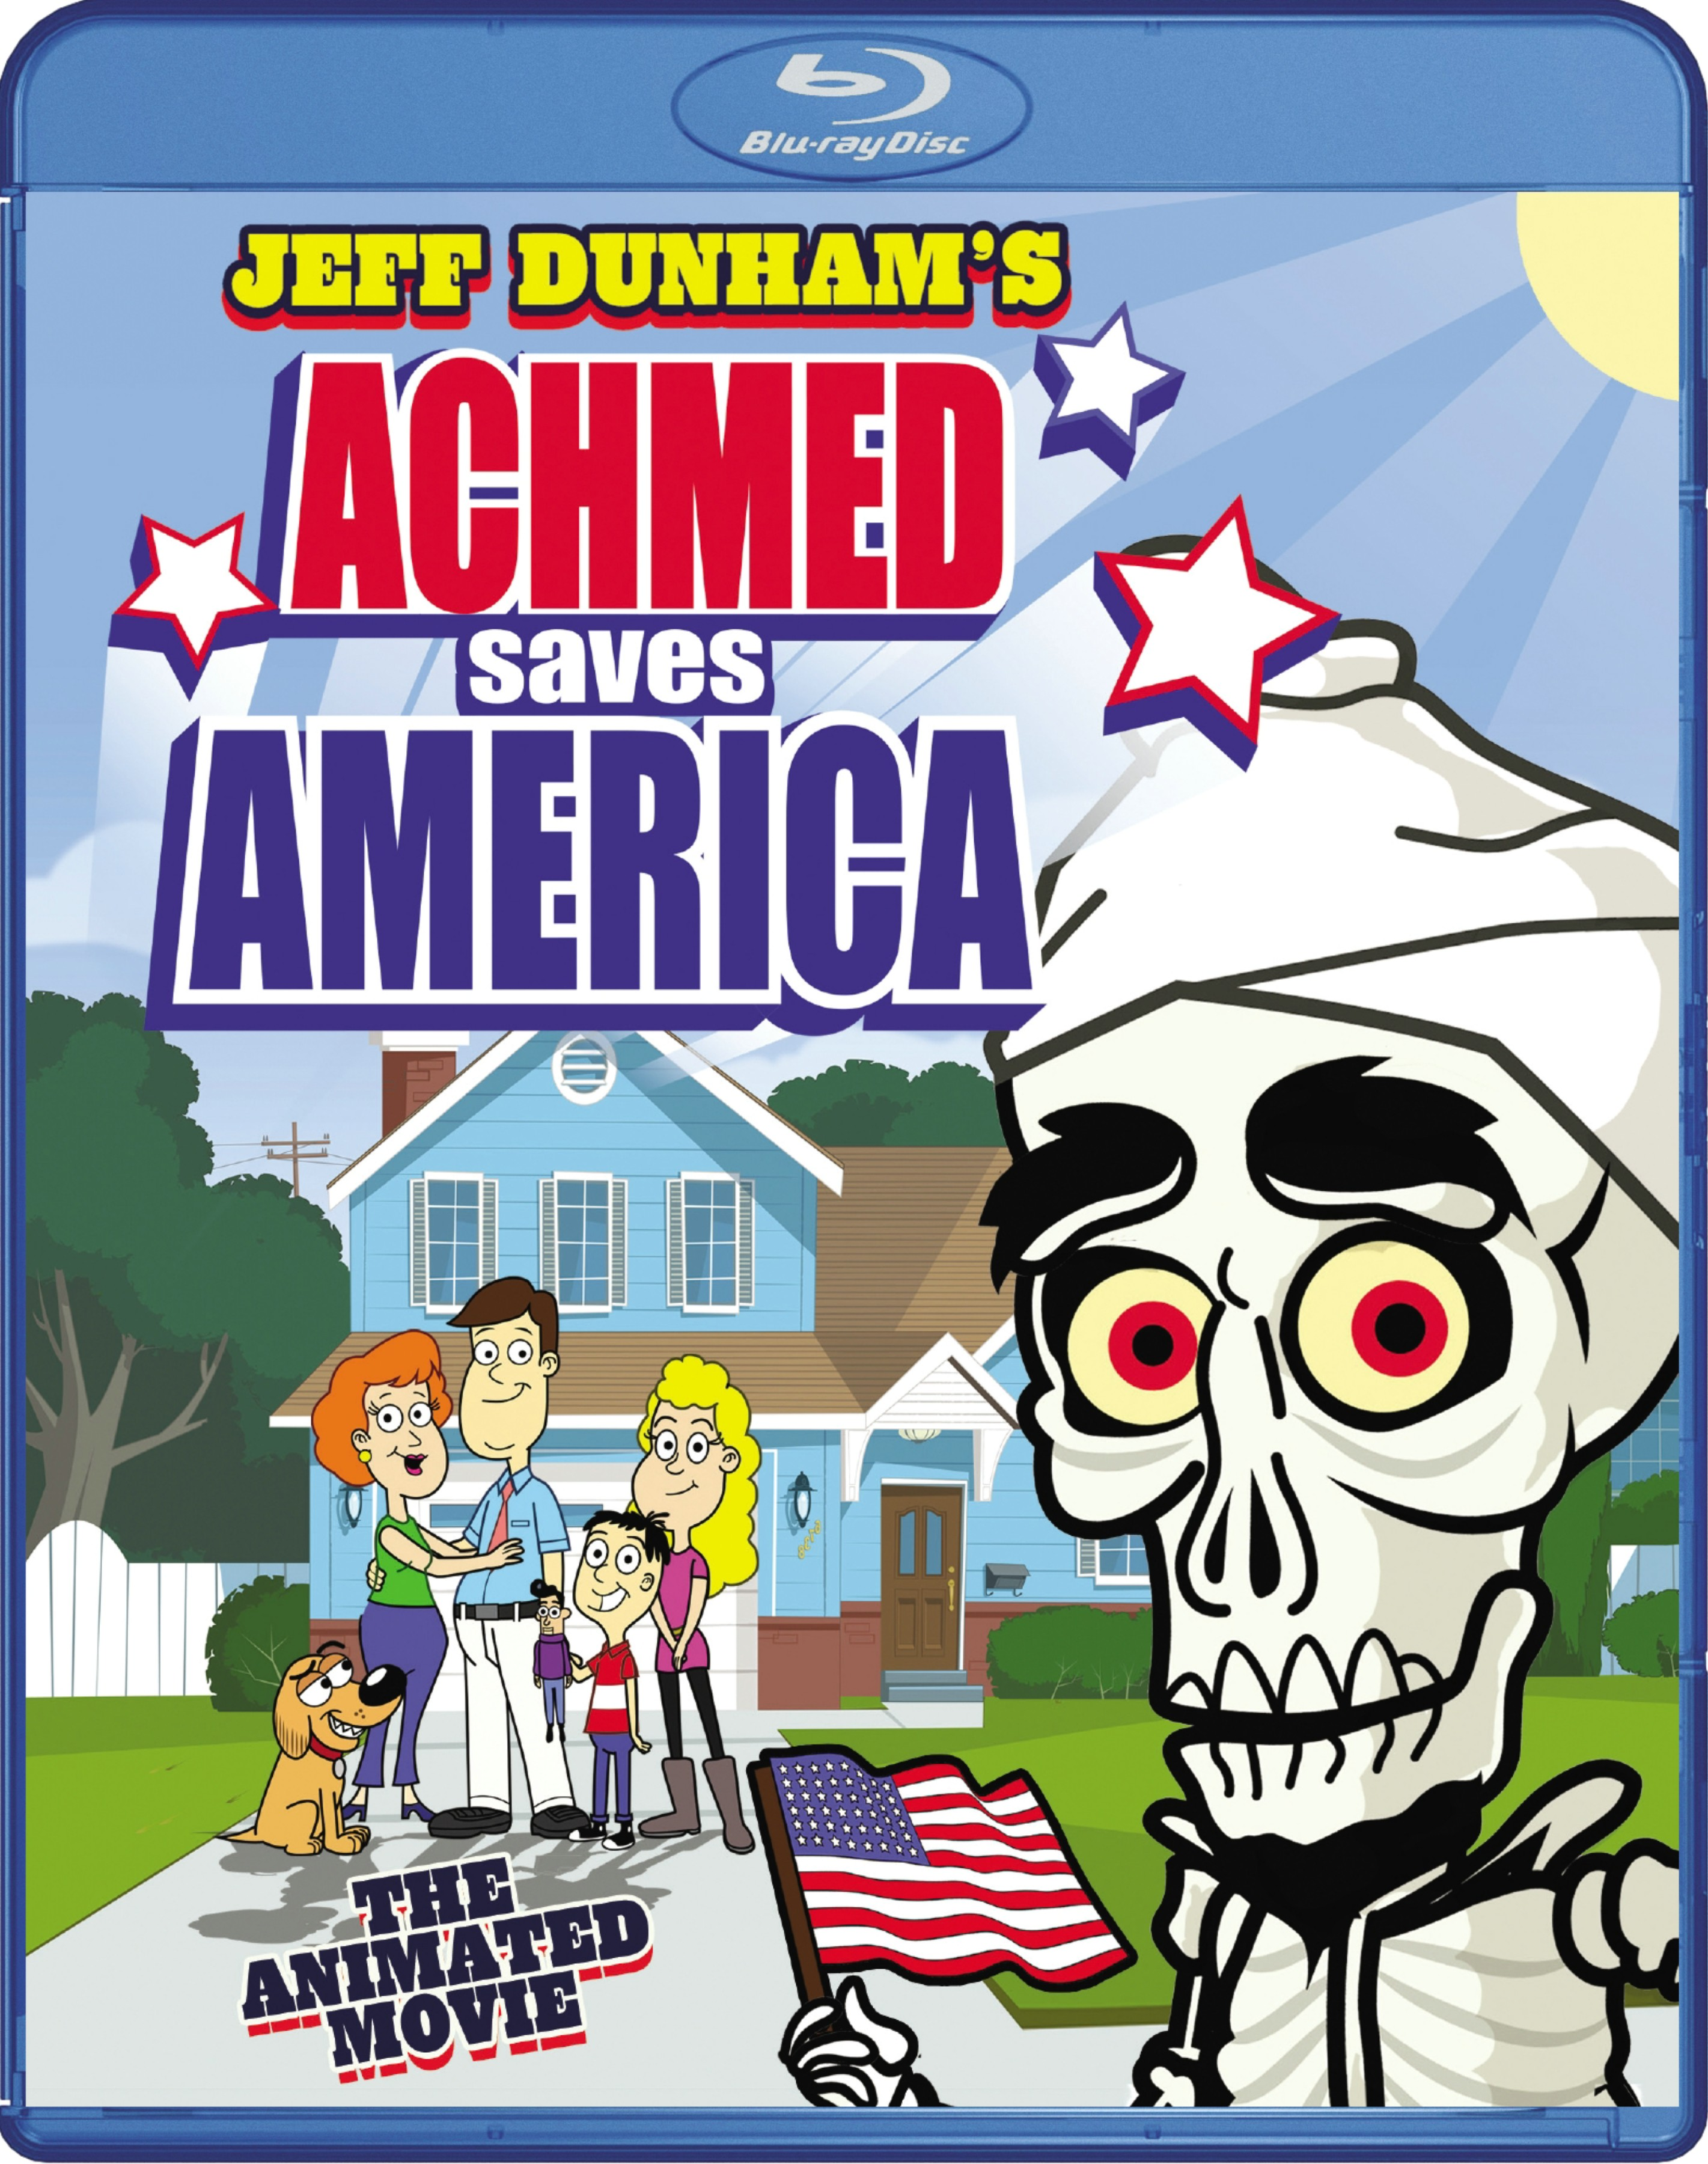 Achmed Saves America Blu-ray Review